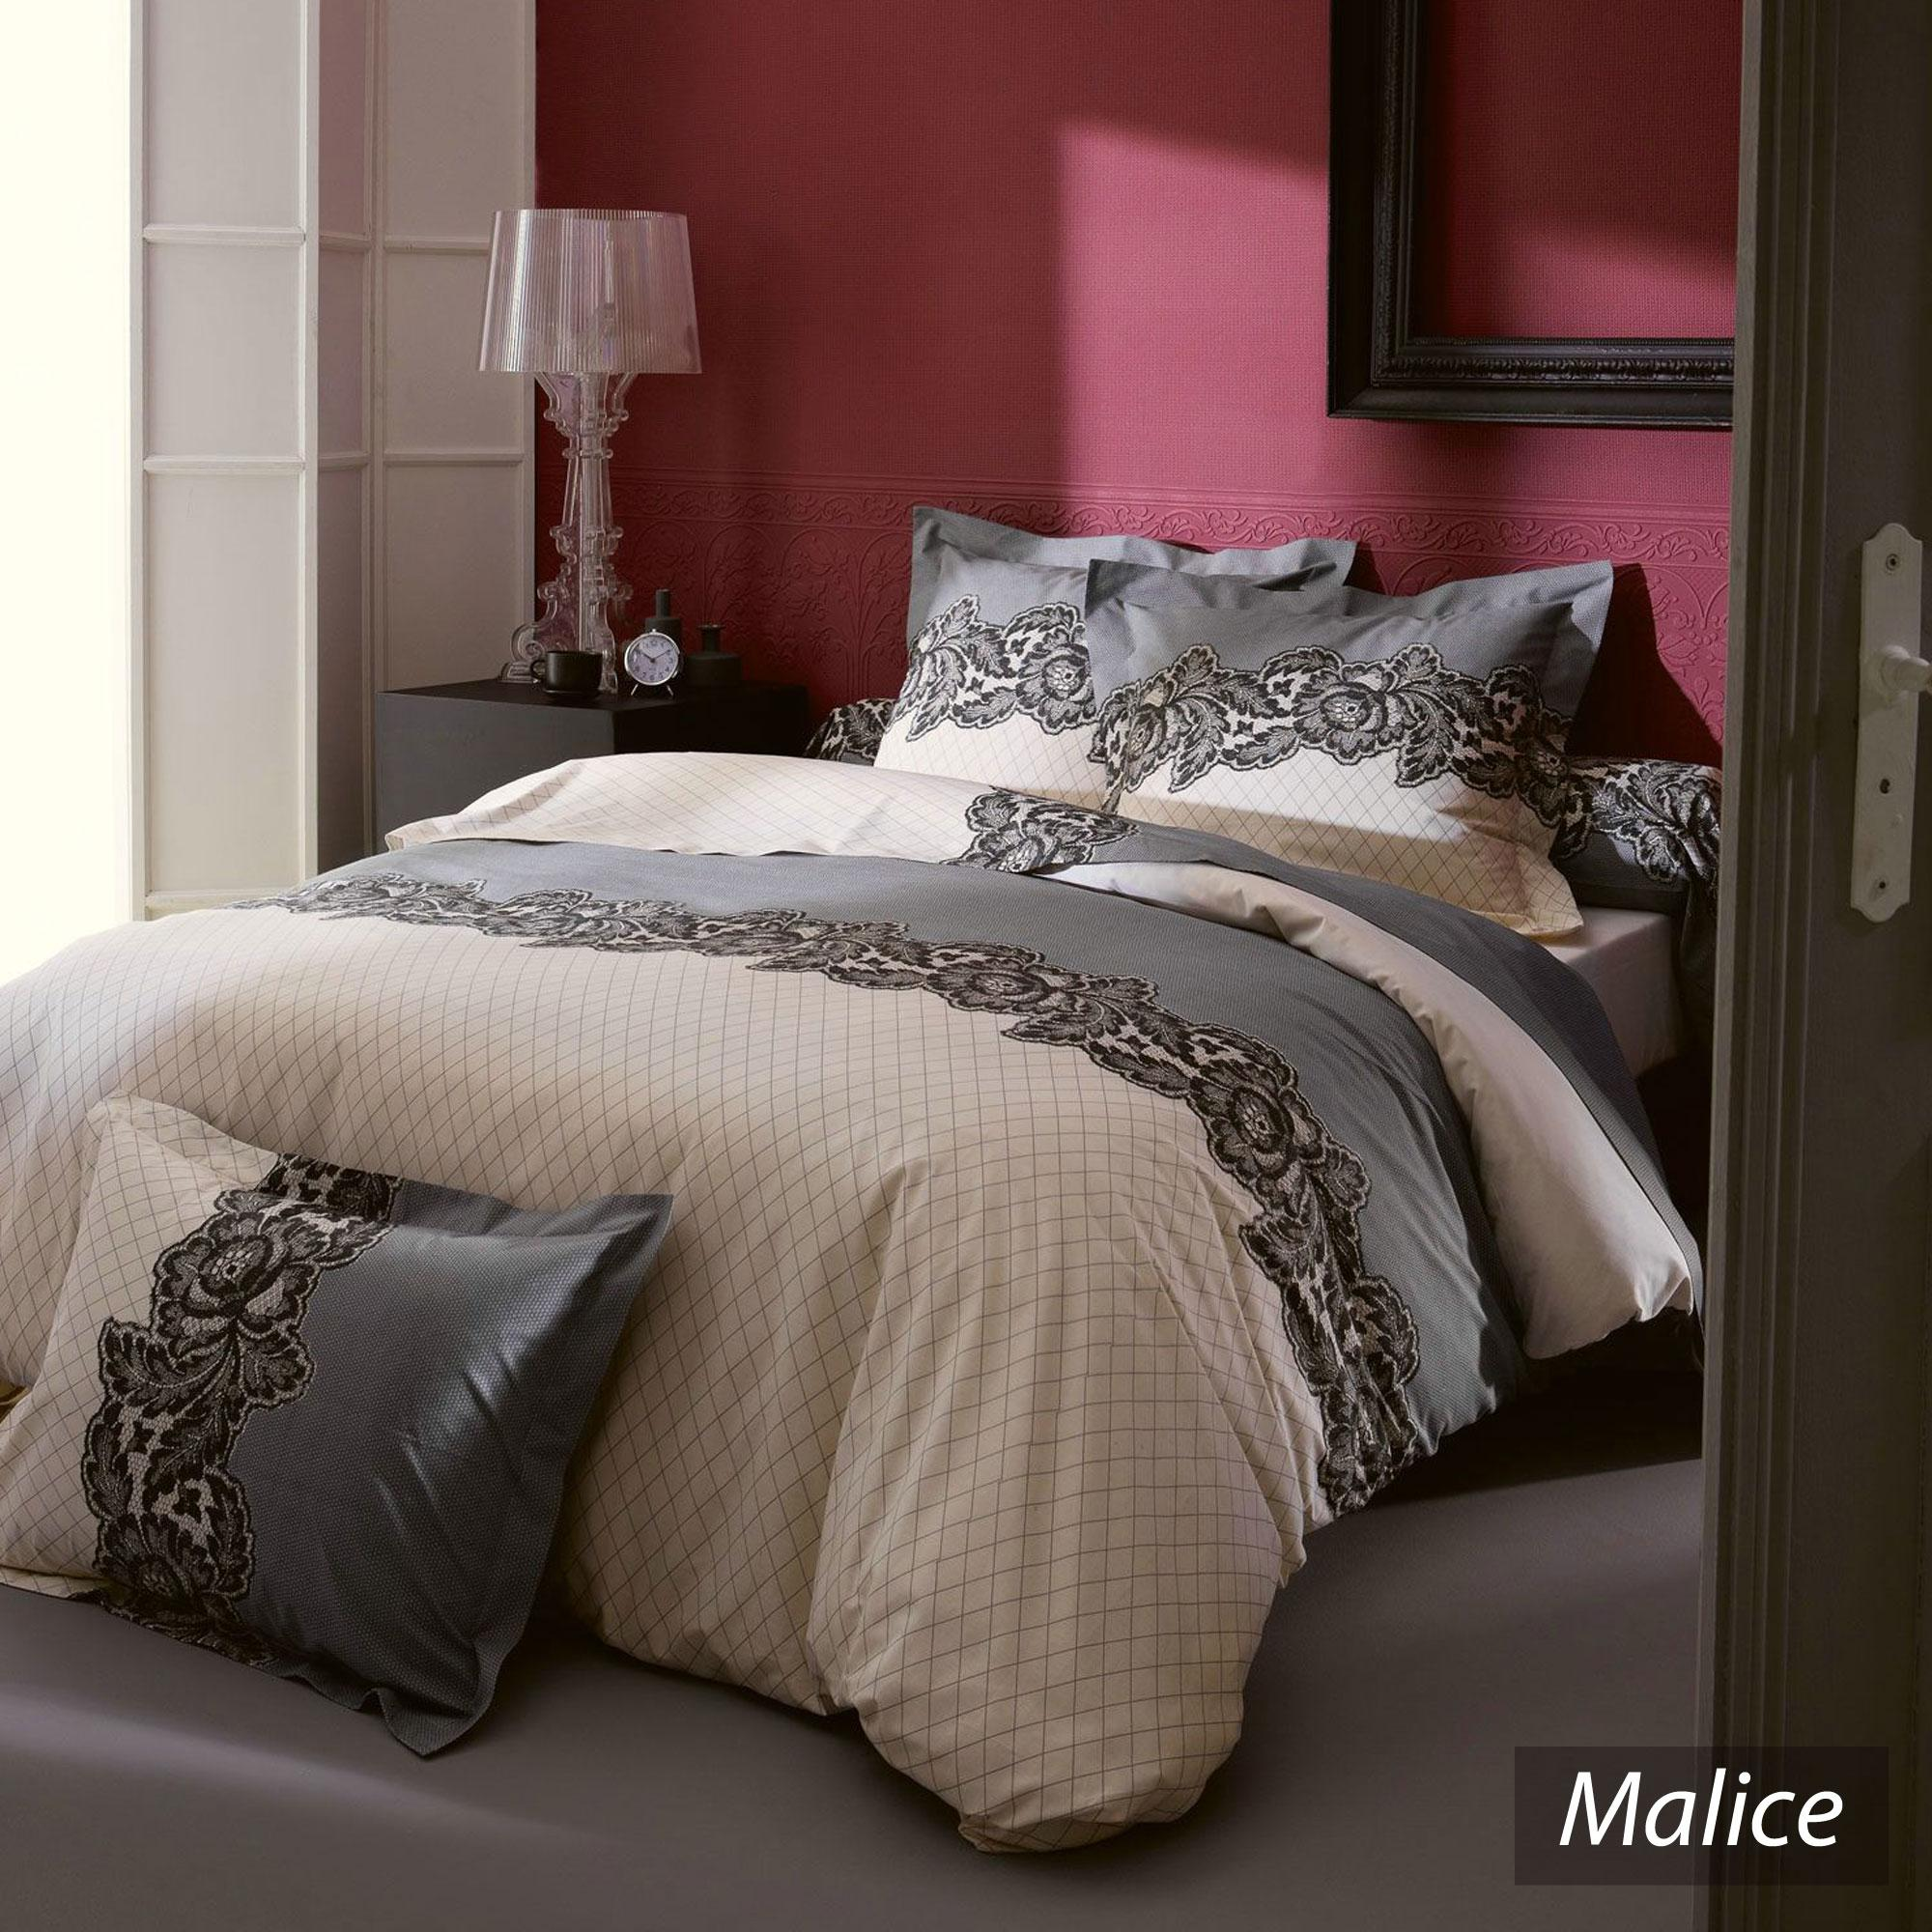 housse de couette 200x200 cm malice linnea vente de linge de maison. Black Bedroom Furniture Sets. Home Design Ideas